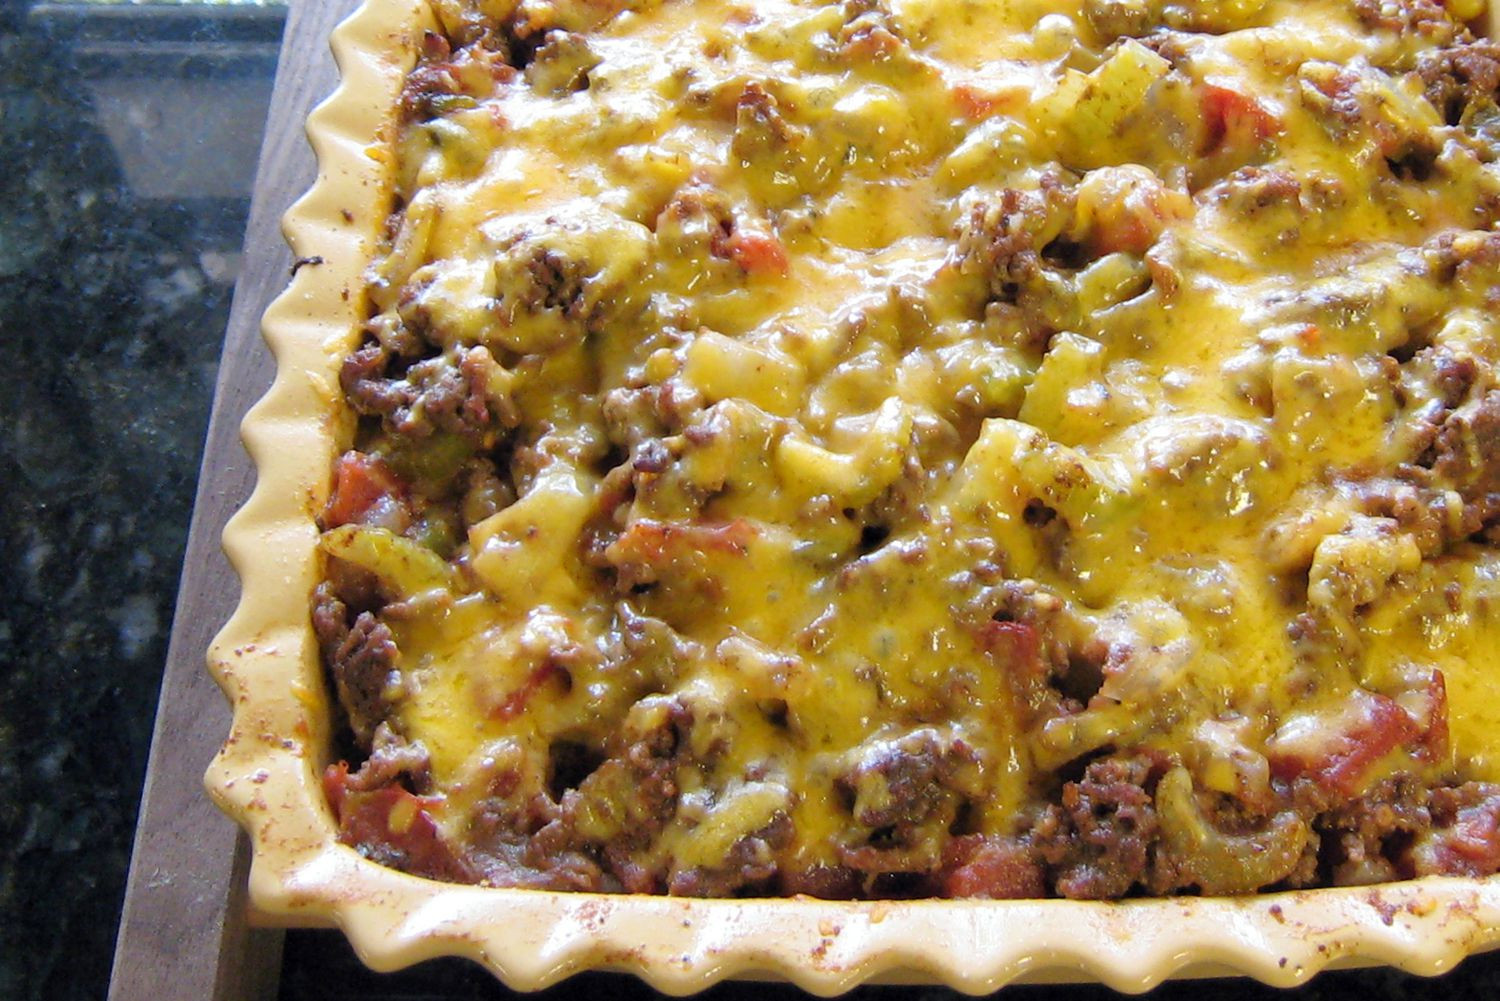 Recipes With Ground Beef And Potatoes  Southwestern Style Beef and Potato Casserole Recipe